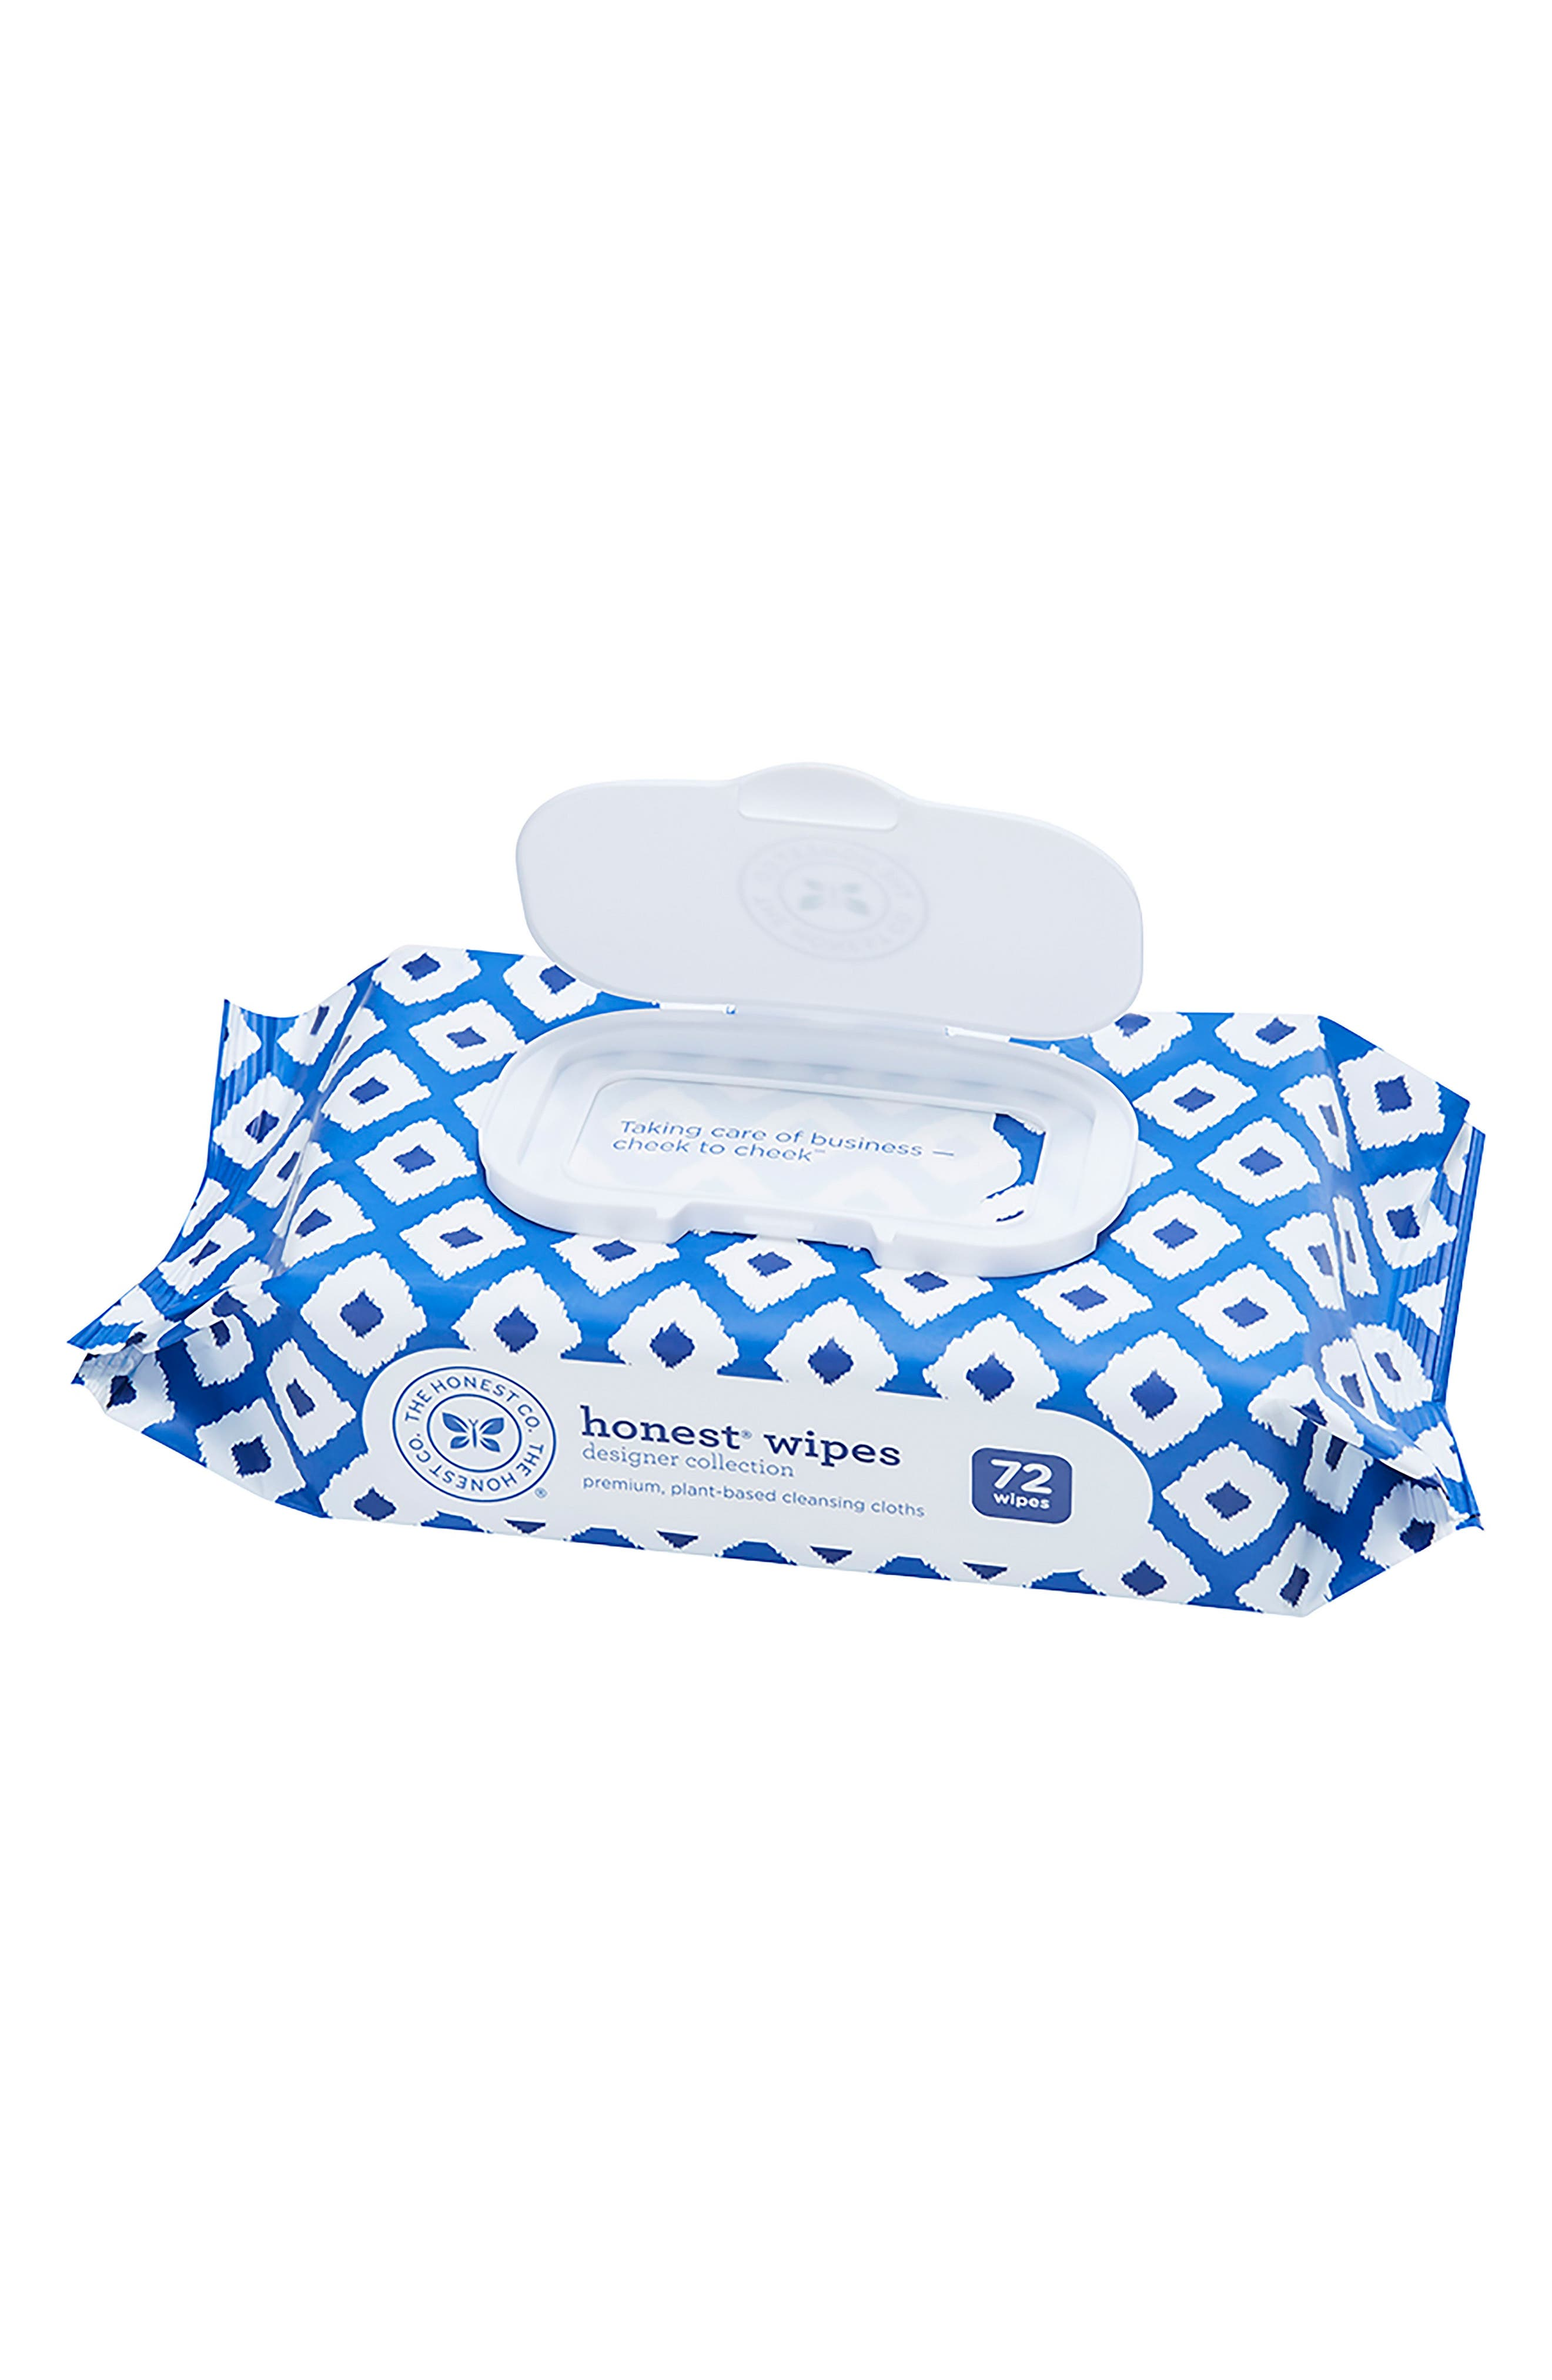 The Honest Company Designer Collection Wipes